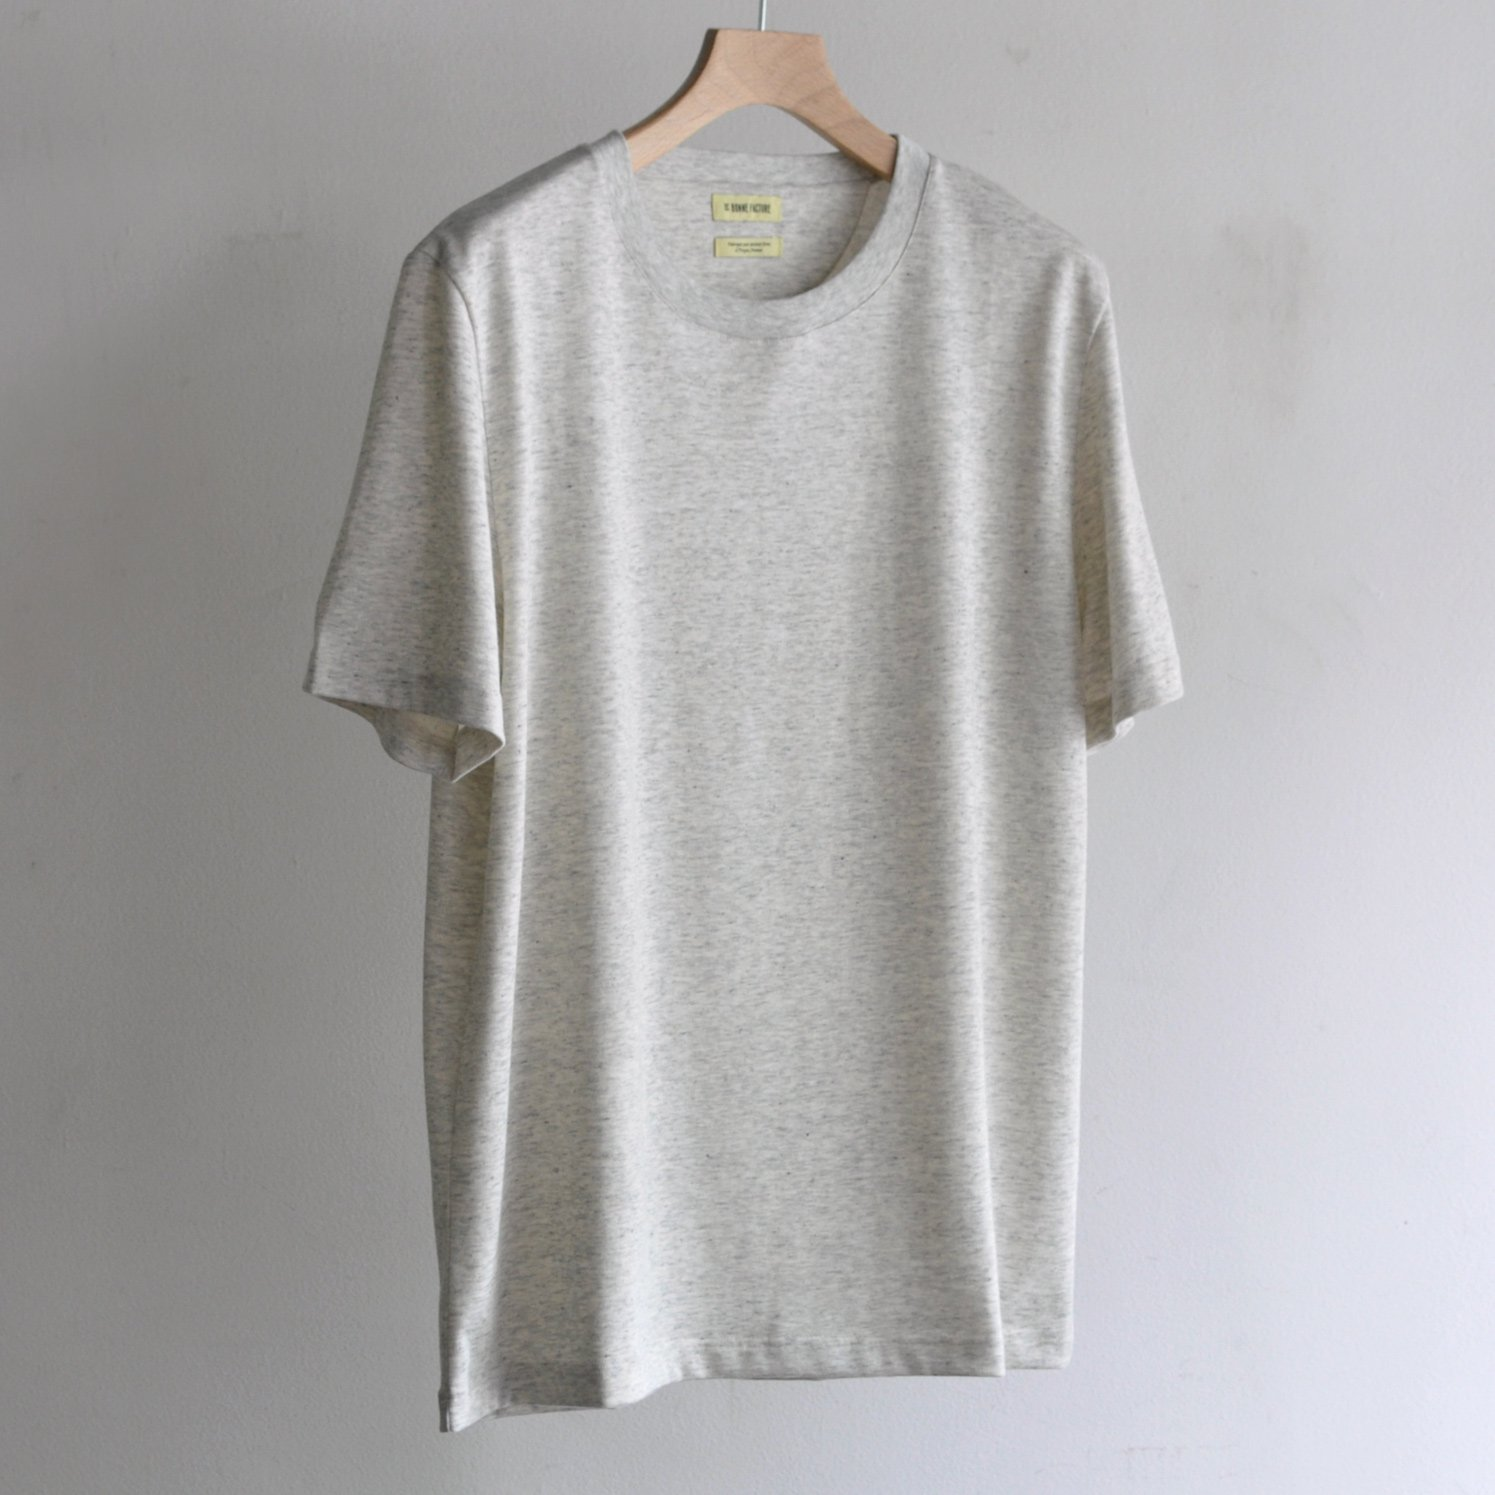 ESSENTIAL T-SHIRT [HEATHERED GRAY]